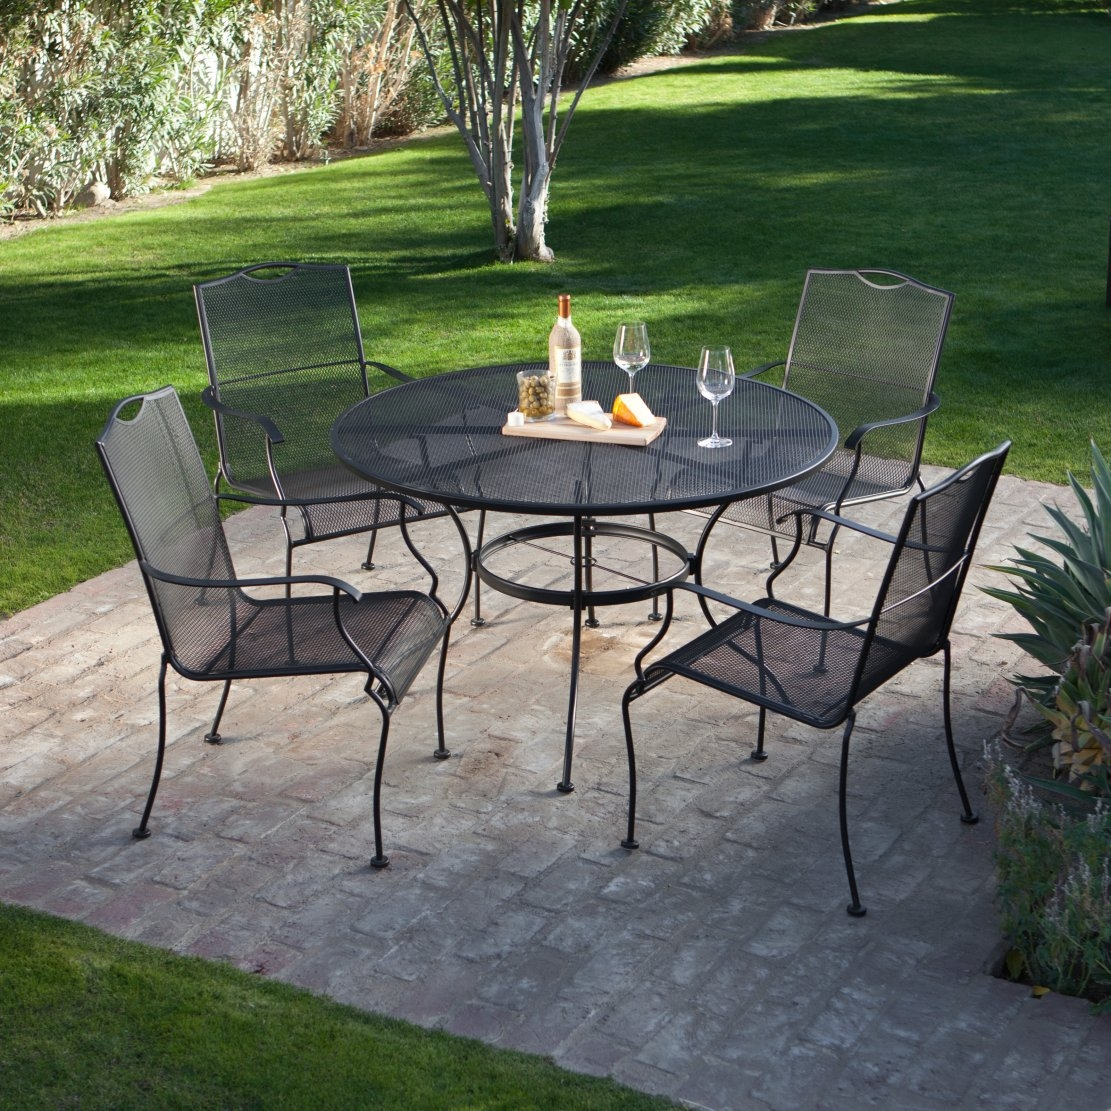 5 Piece Wrought Iron Patio Furniture Dining Set Seats 4